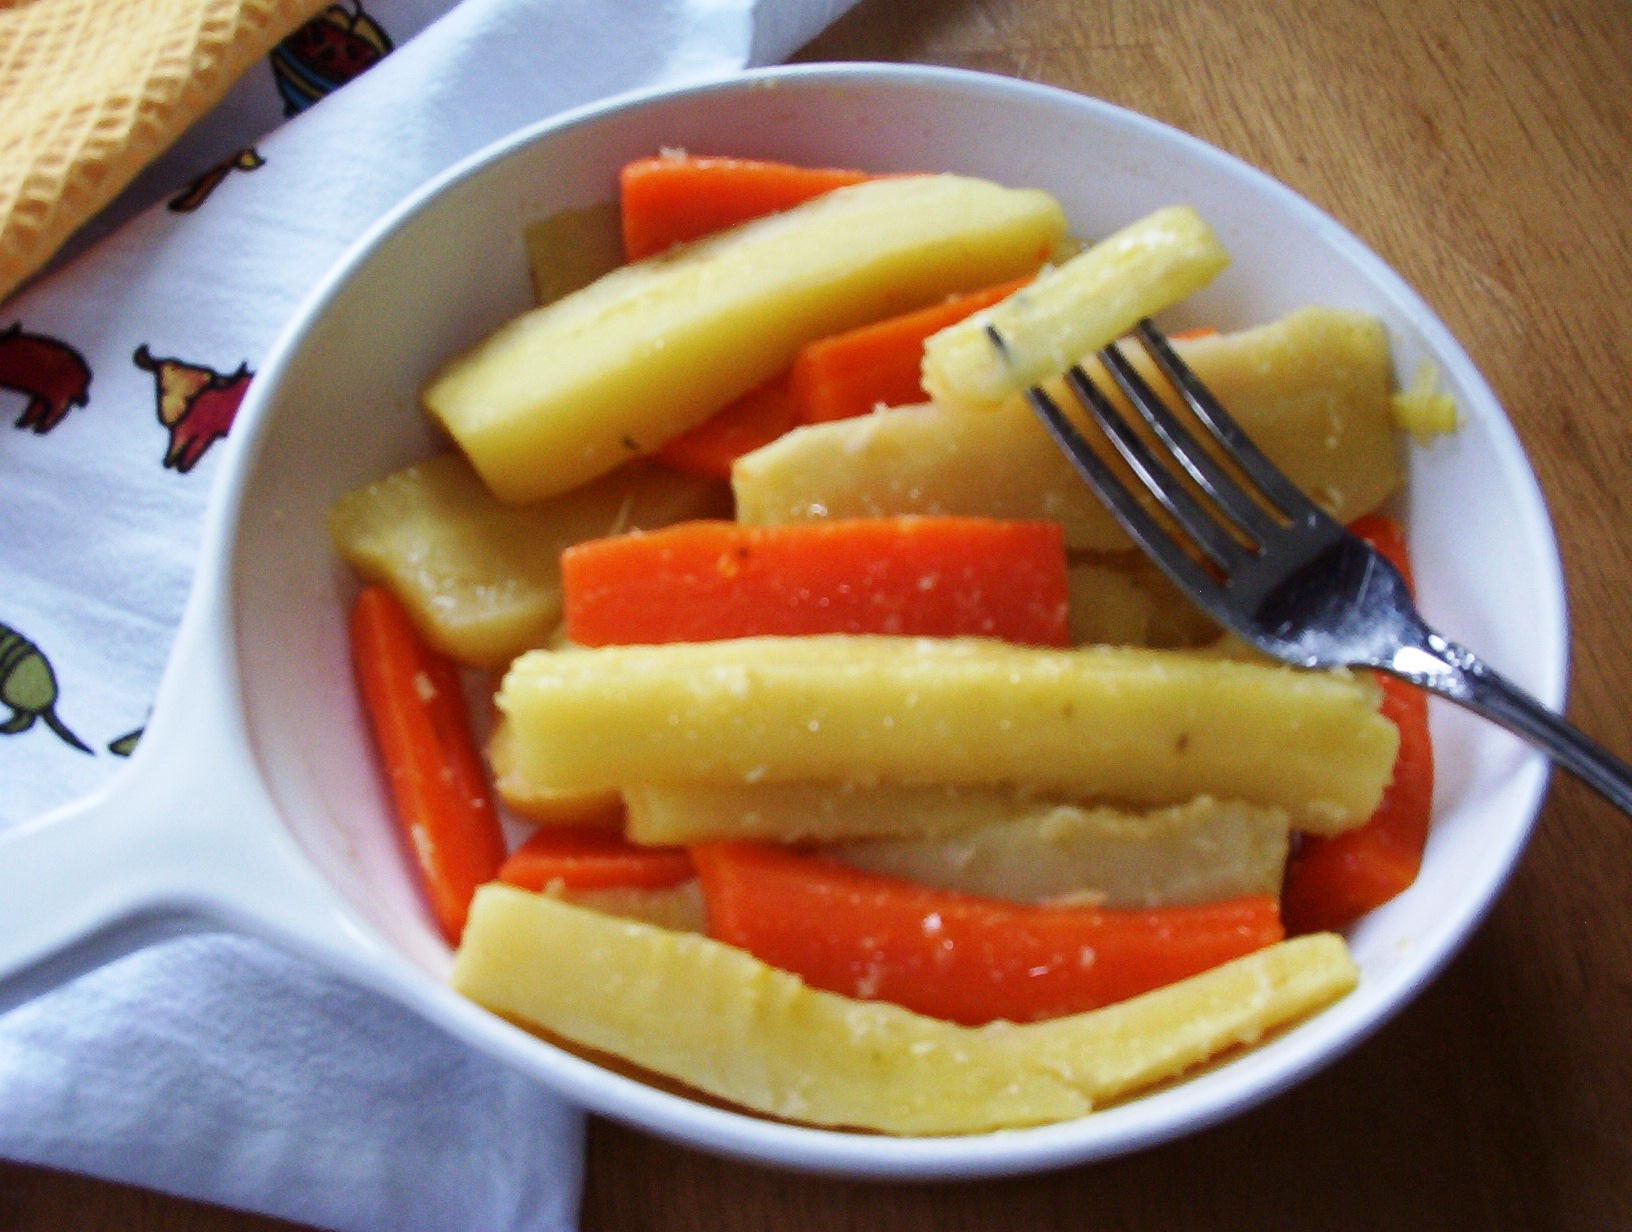 Gluten-Free Carrots and Parsnips with Horseradish